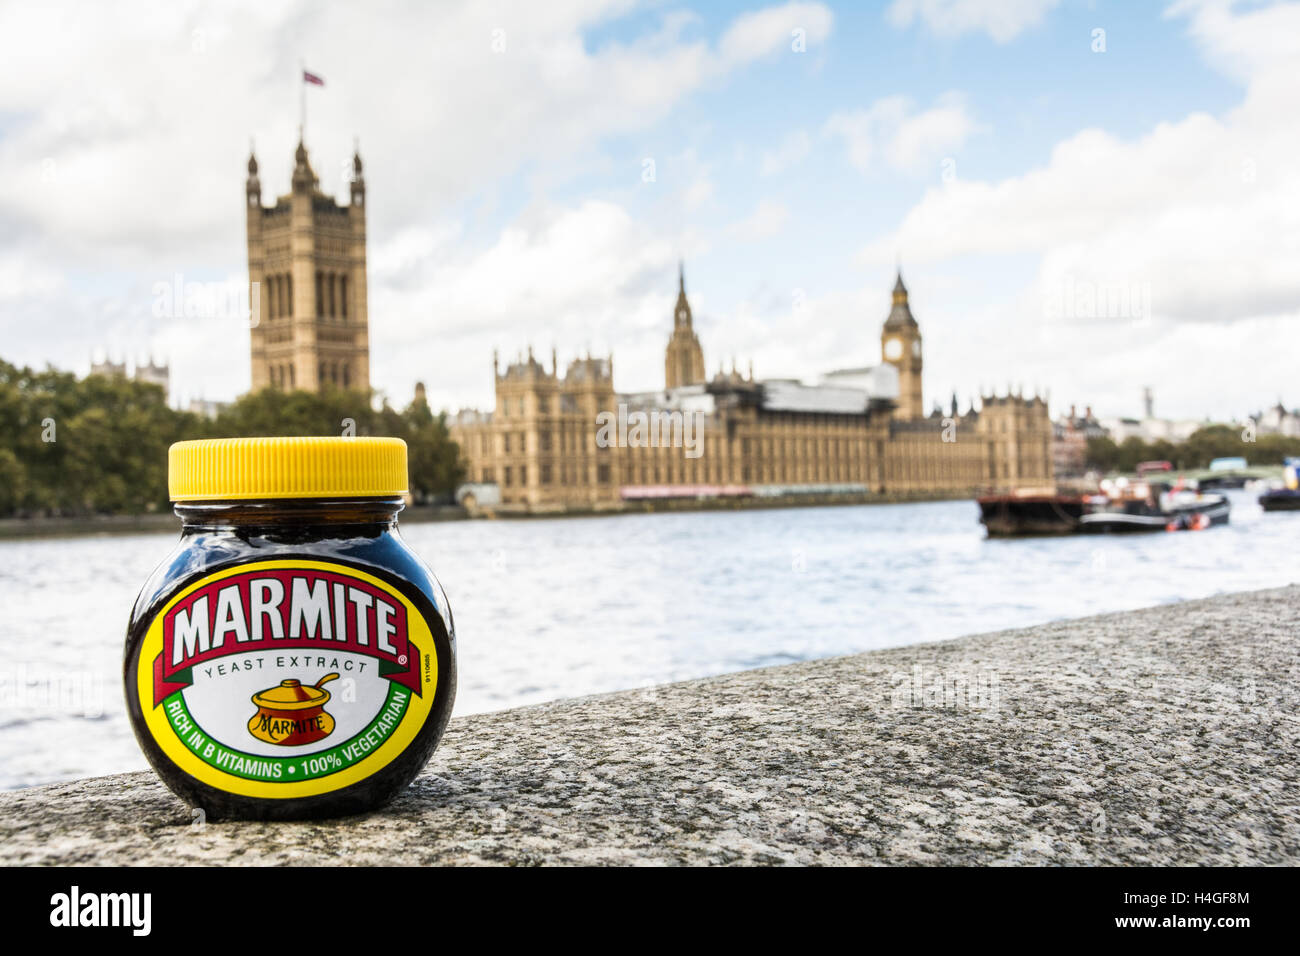 A marmite jar on the banks of the River Thames overlooking the Houses of Parliament - Stock Image